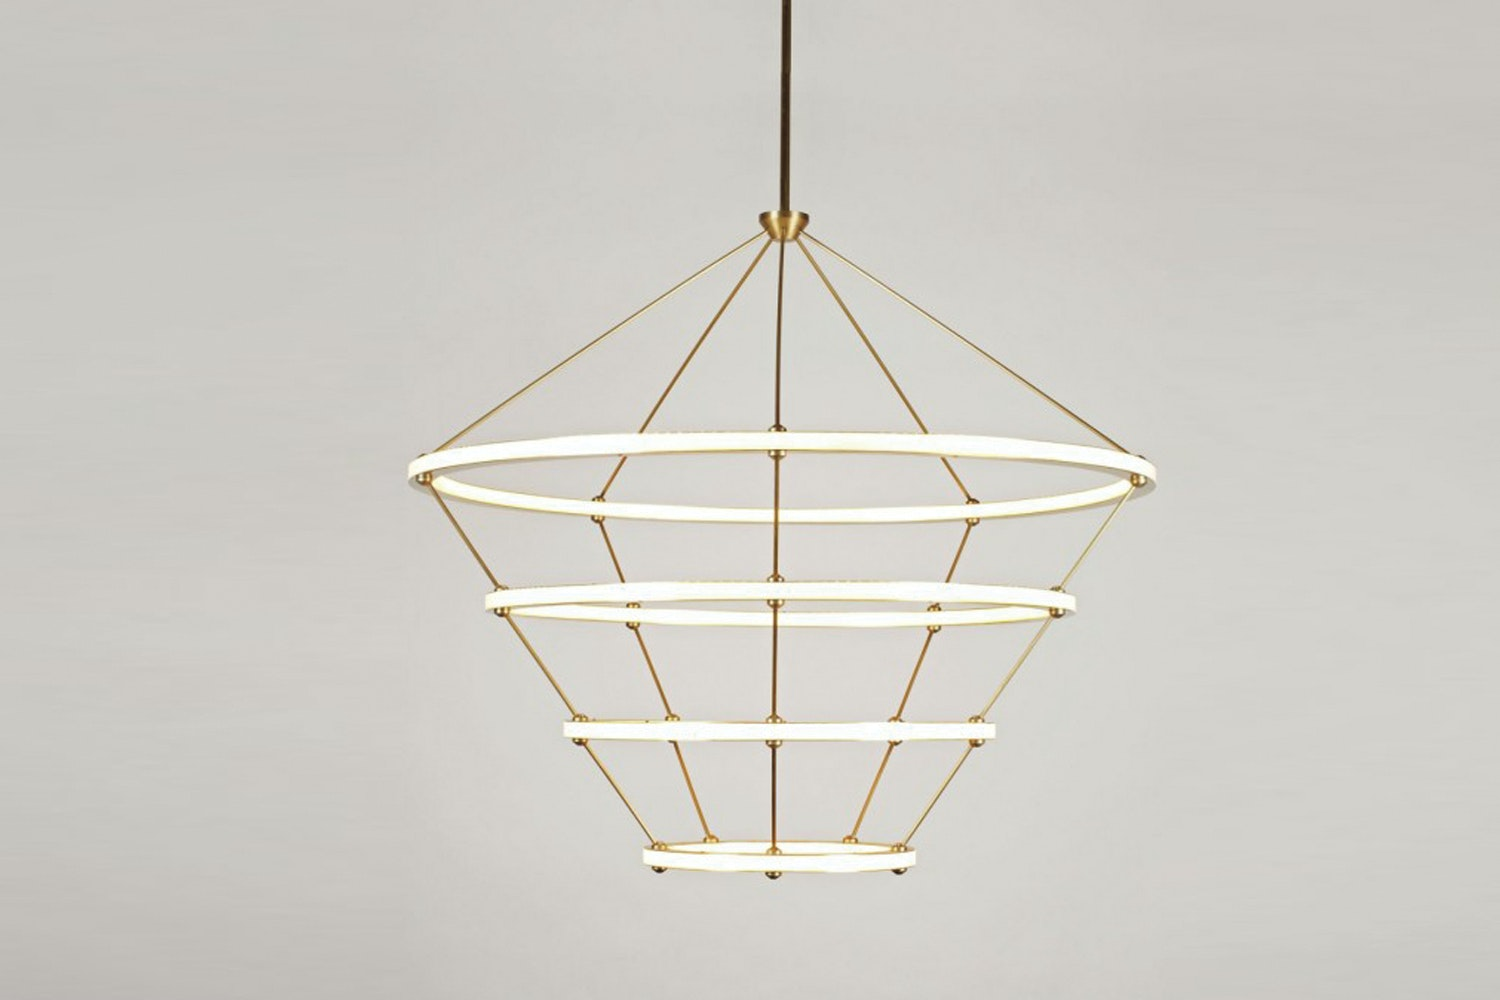 Halo Suspension Lamp by Paul Loebach for Roll & Hill